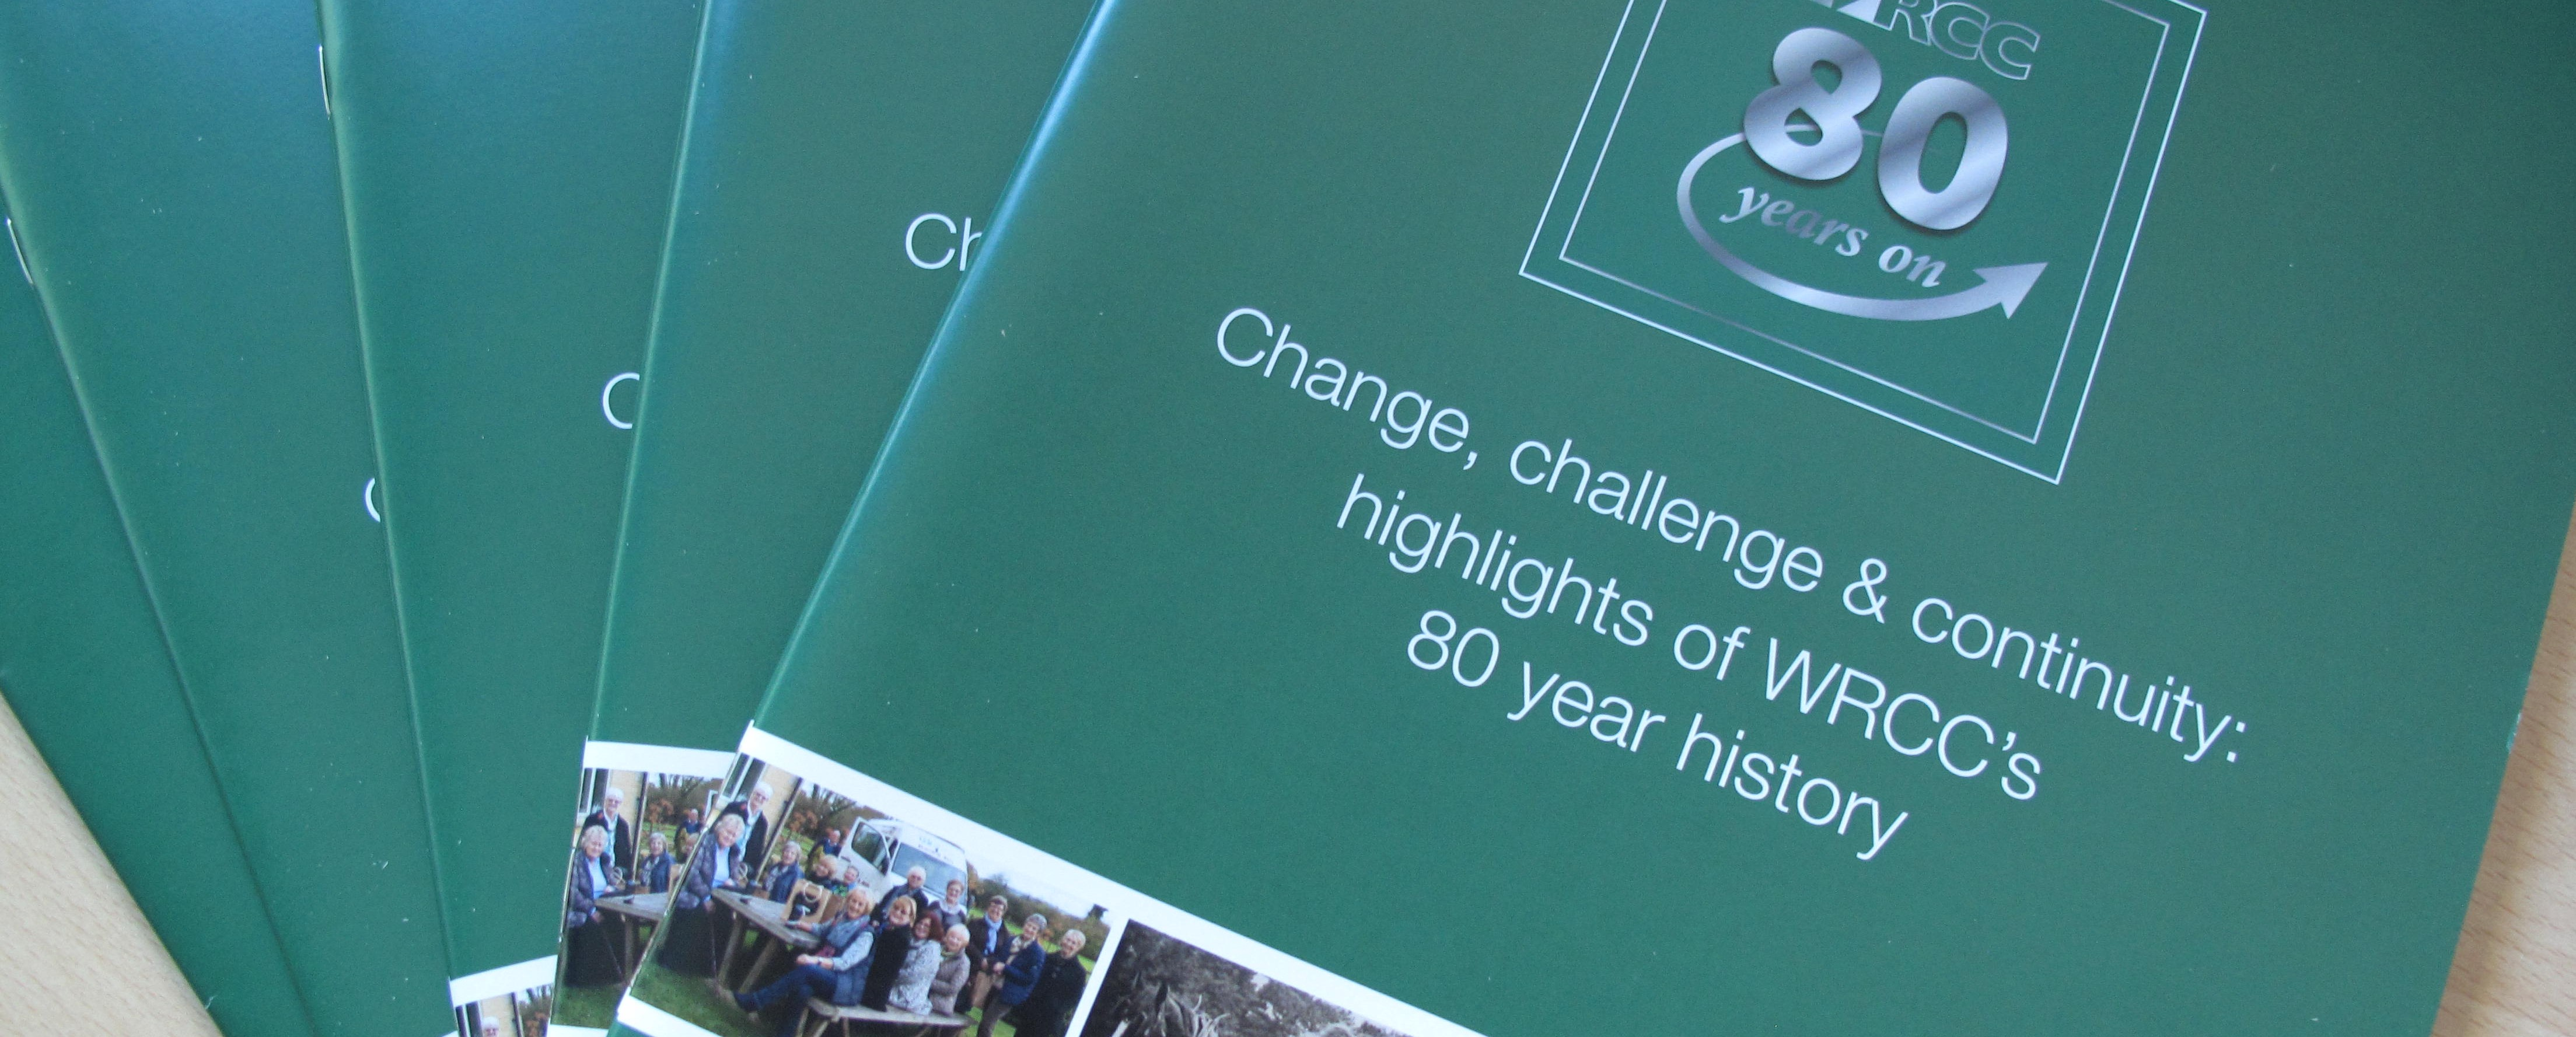 Change, challenge & continuity: WRCC 80 years on